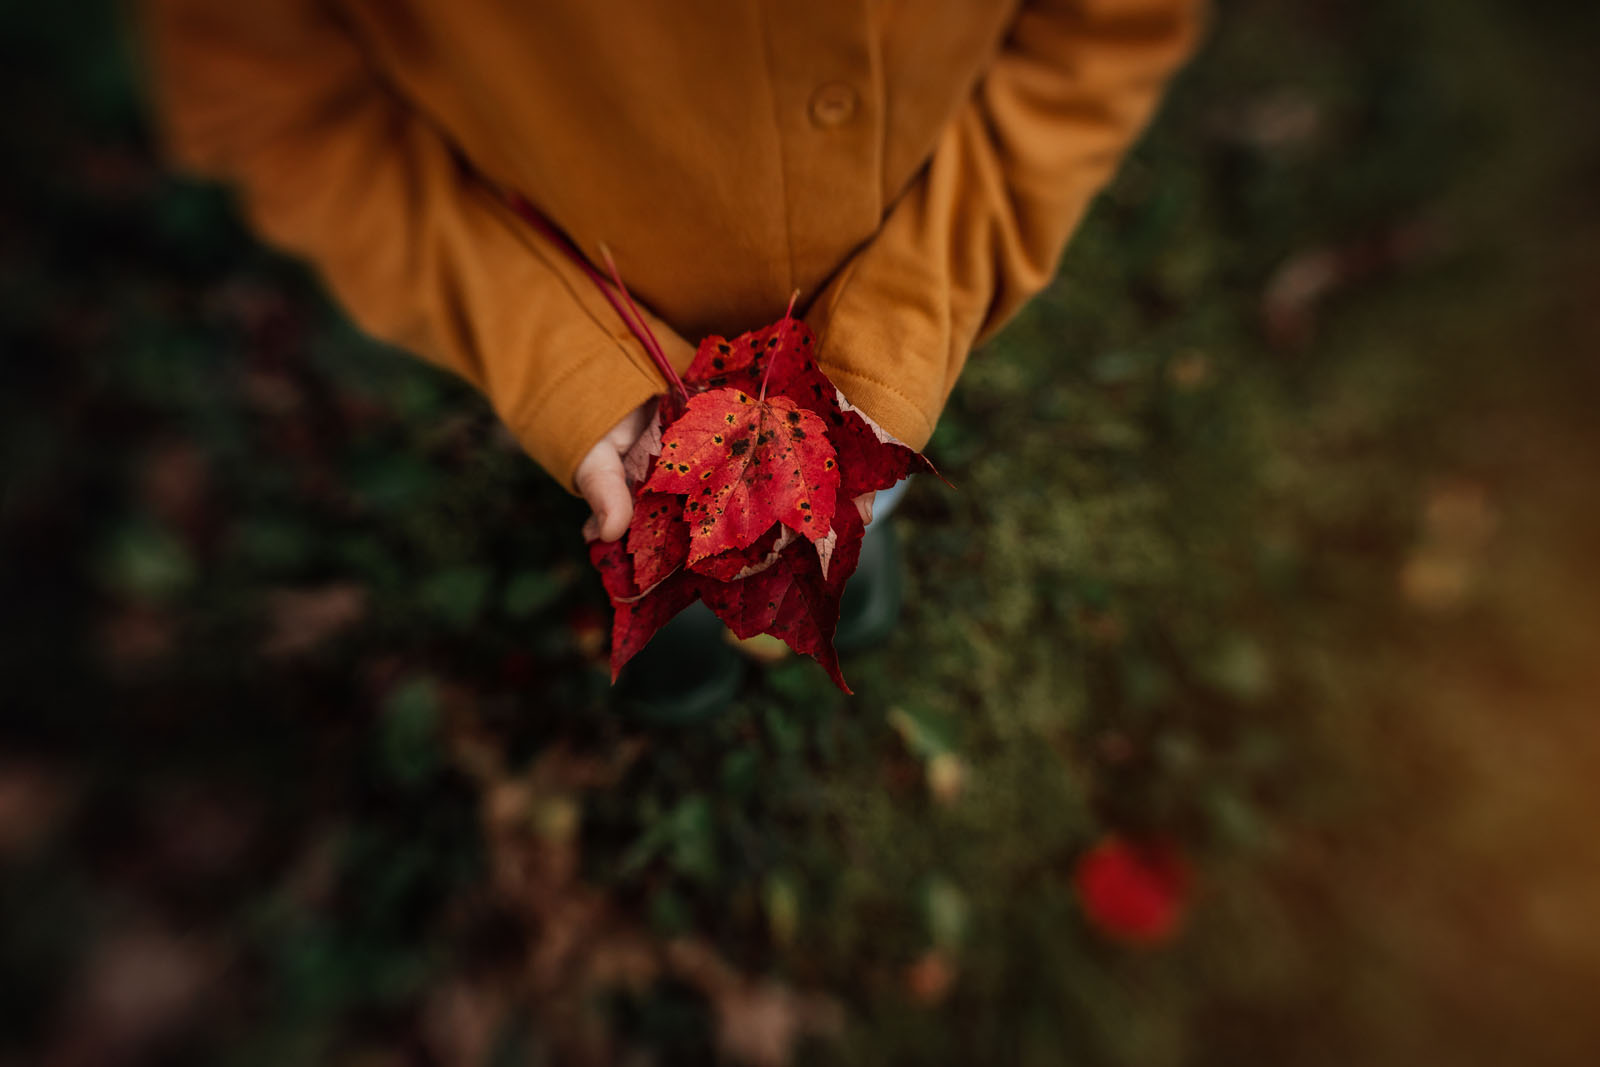 megloeks_image16 child holding red leaves autumn in hands fall activities by meg loeks